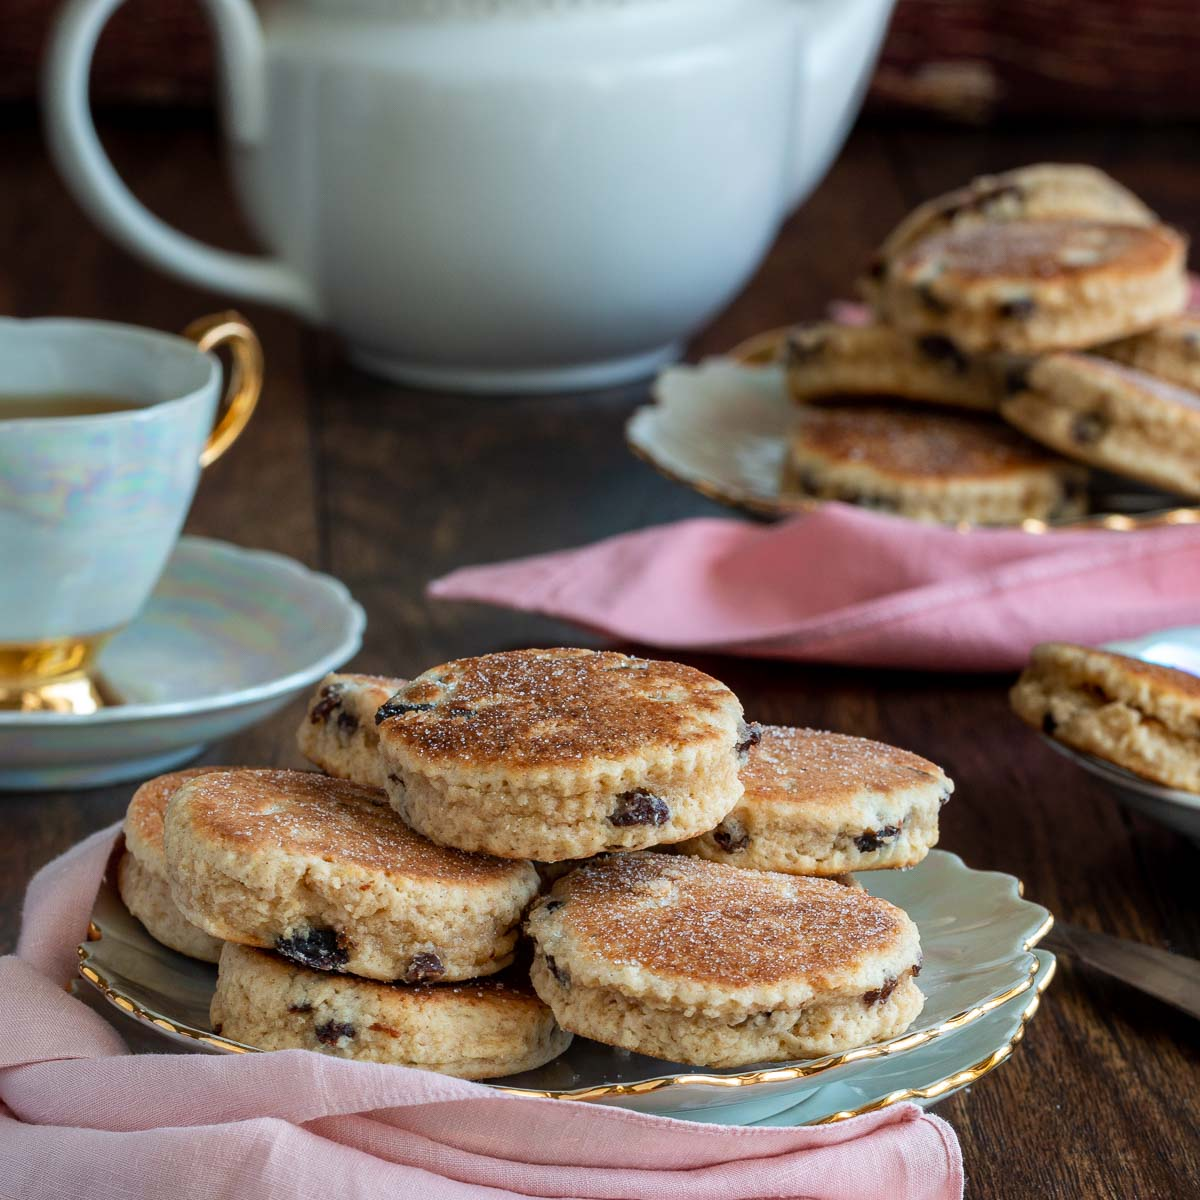 Dish of traditional welsh cakes in a pretty plate with matching tea set.